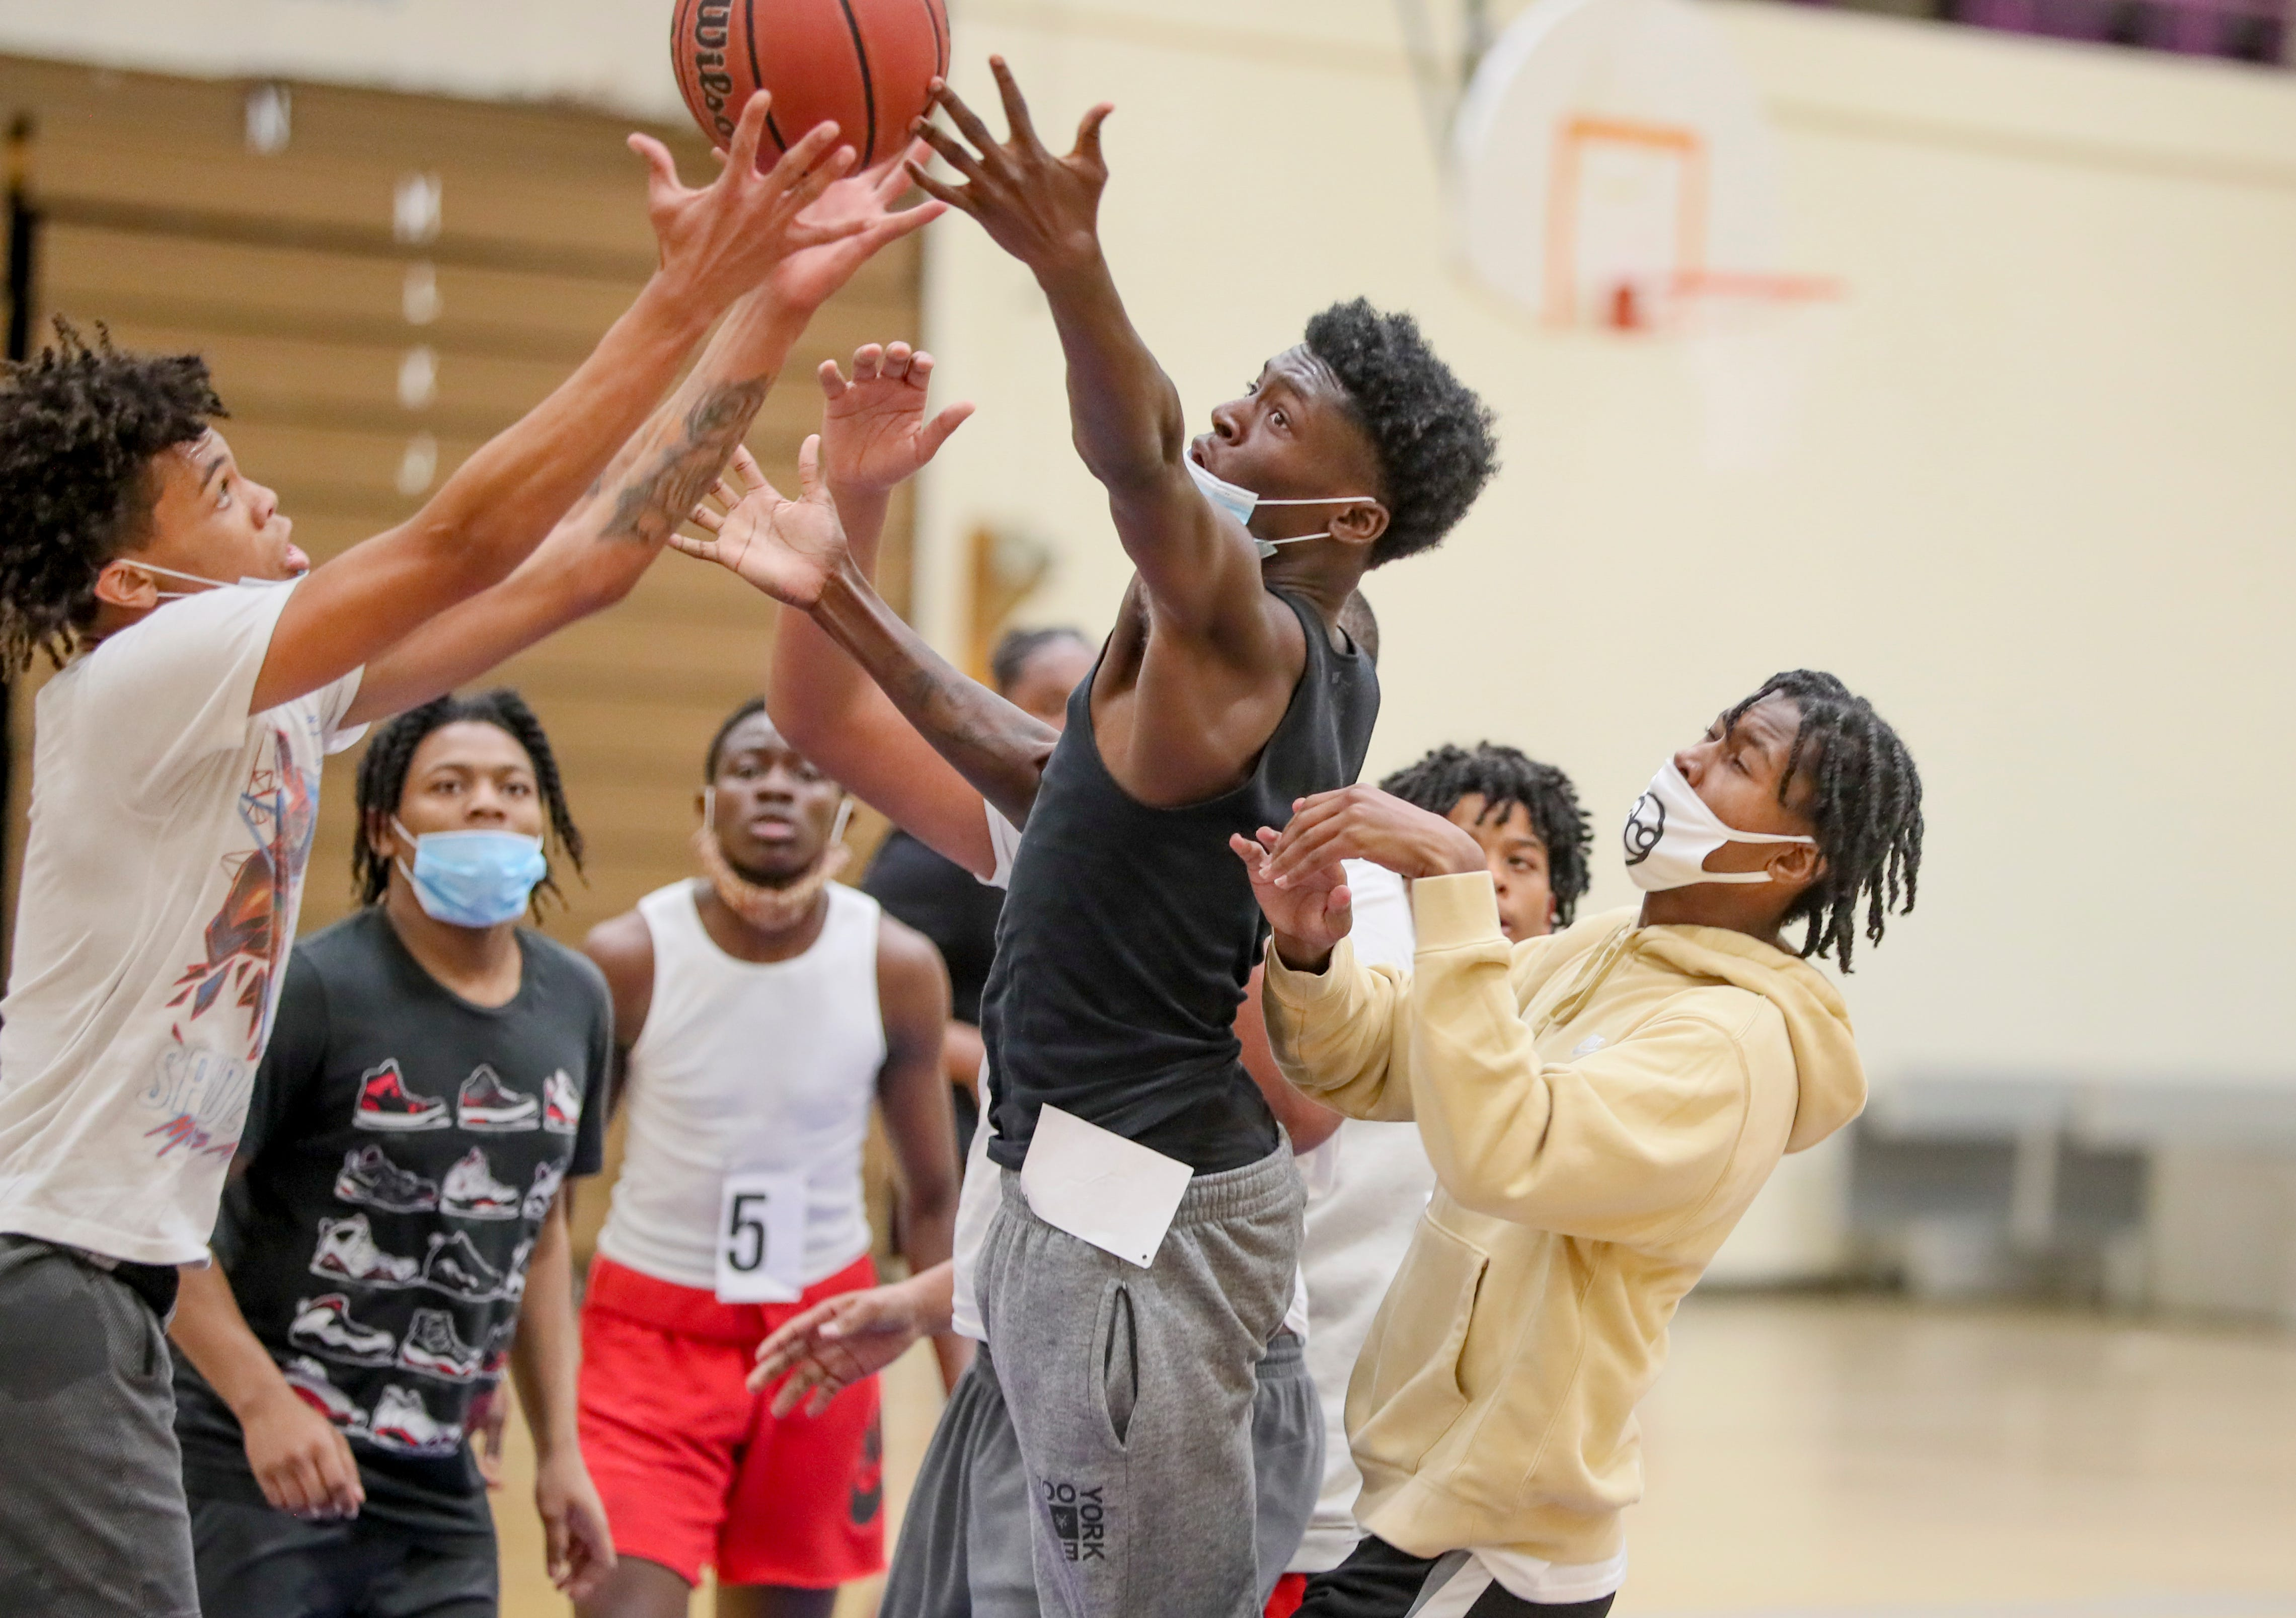 Tahjhe Johnson, left, and players fight for the ball during a scrimmage after tryouts with Cream Skills Inc., a Milwaukee basketball league, on April 27, 2021, at North Division High School in Milwaukee.